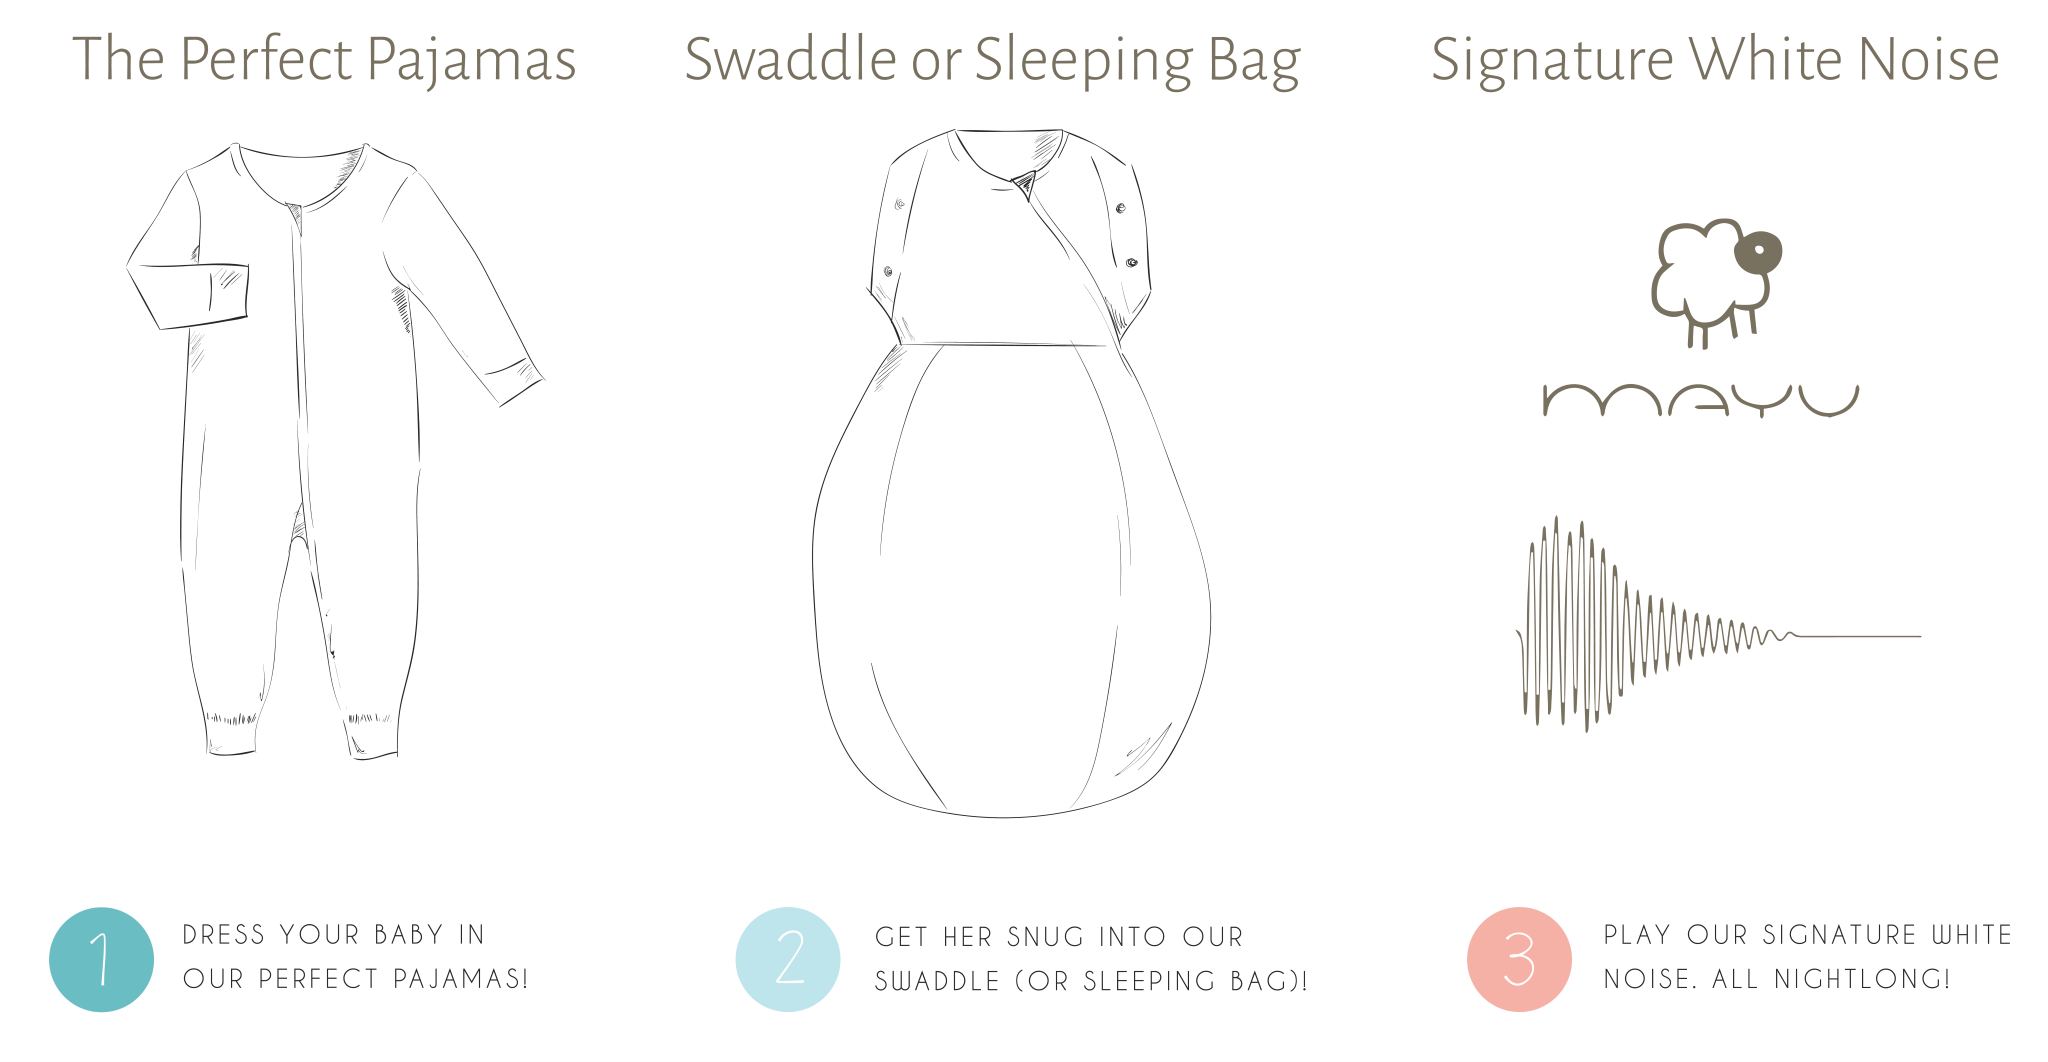 Mayubaby Sleep Solutions: The Perfect Pajamas | Swaddle or Sleeping bag | Signature White Noise